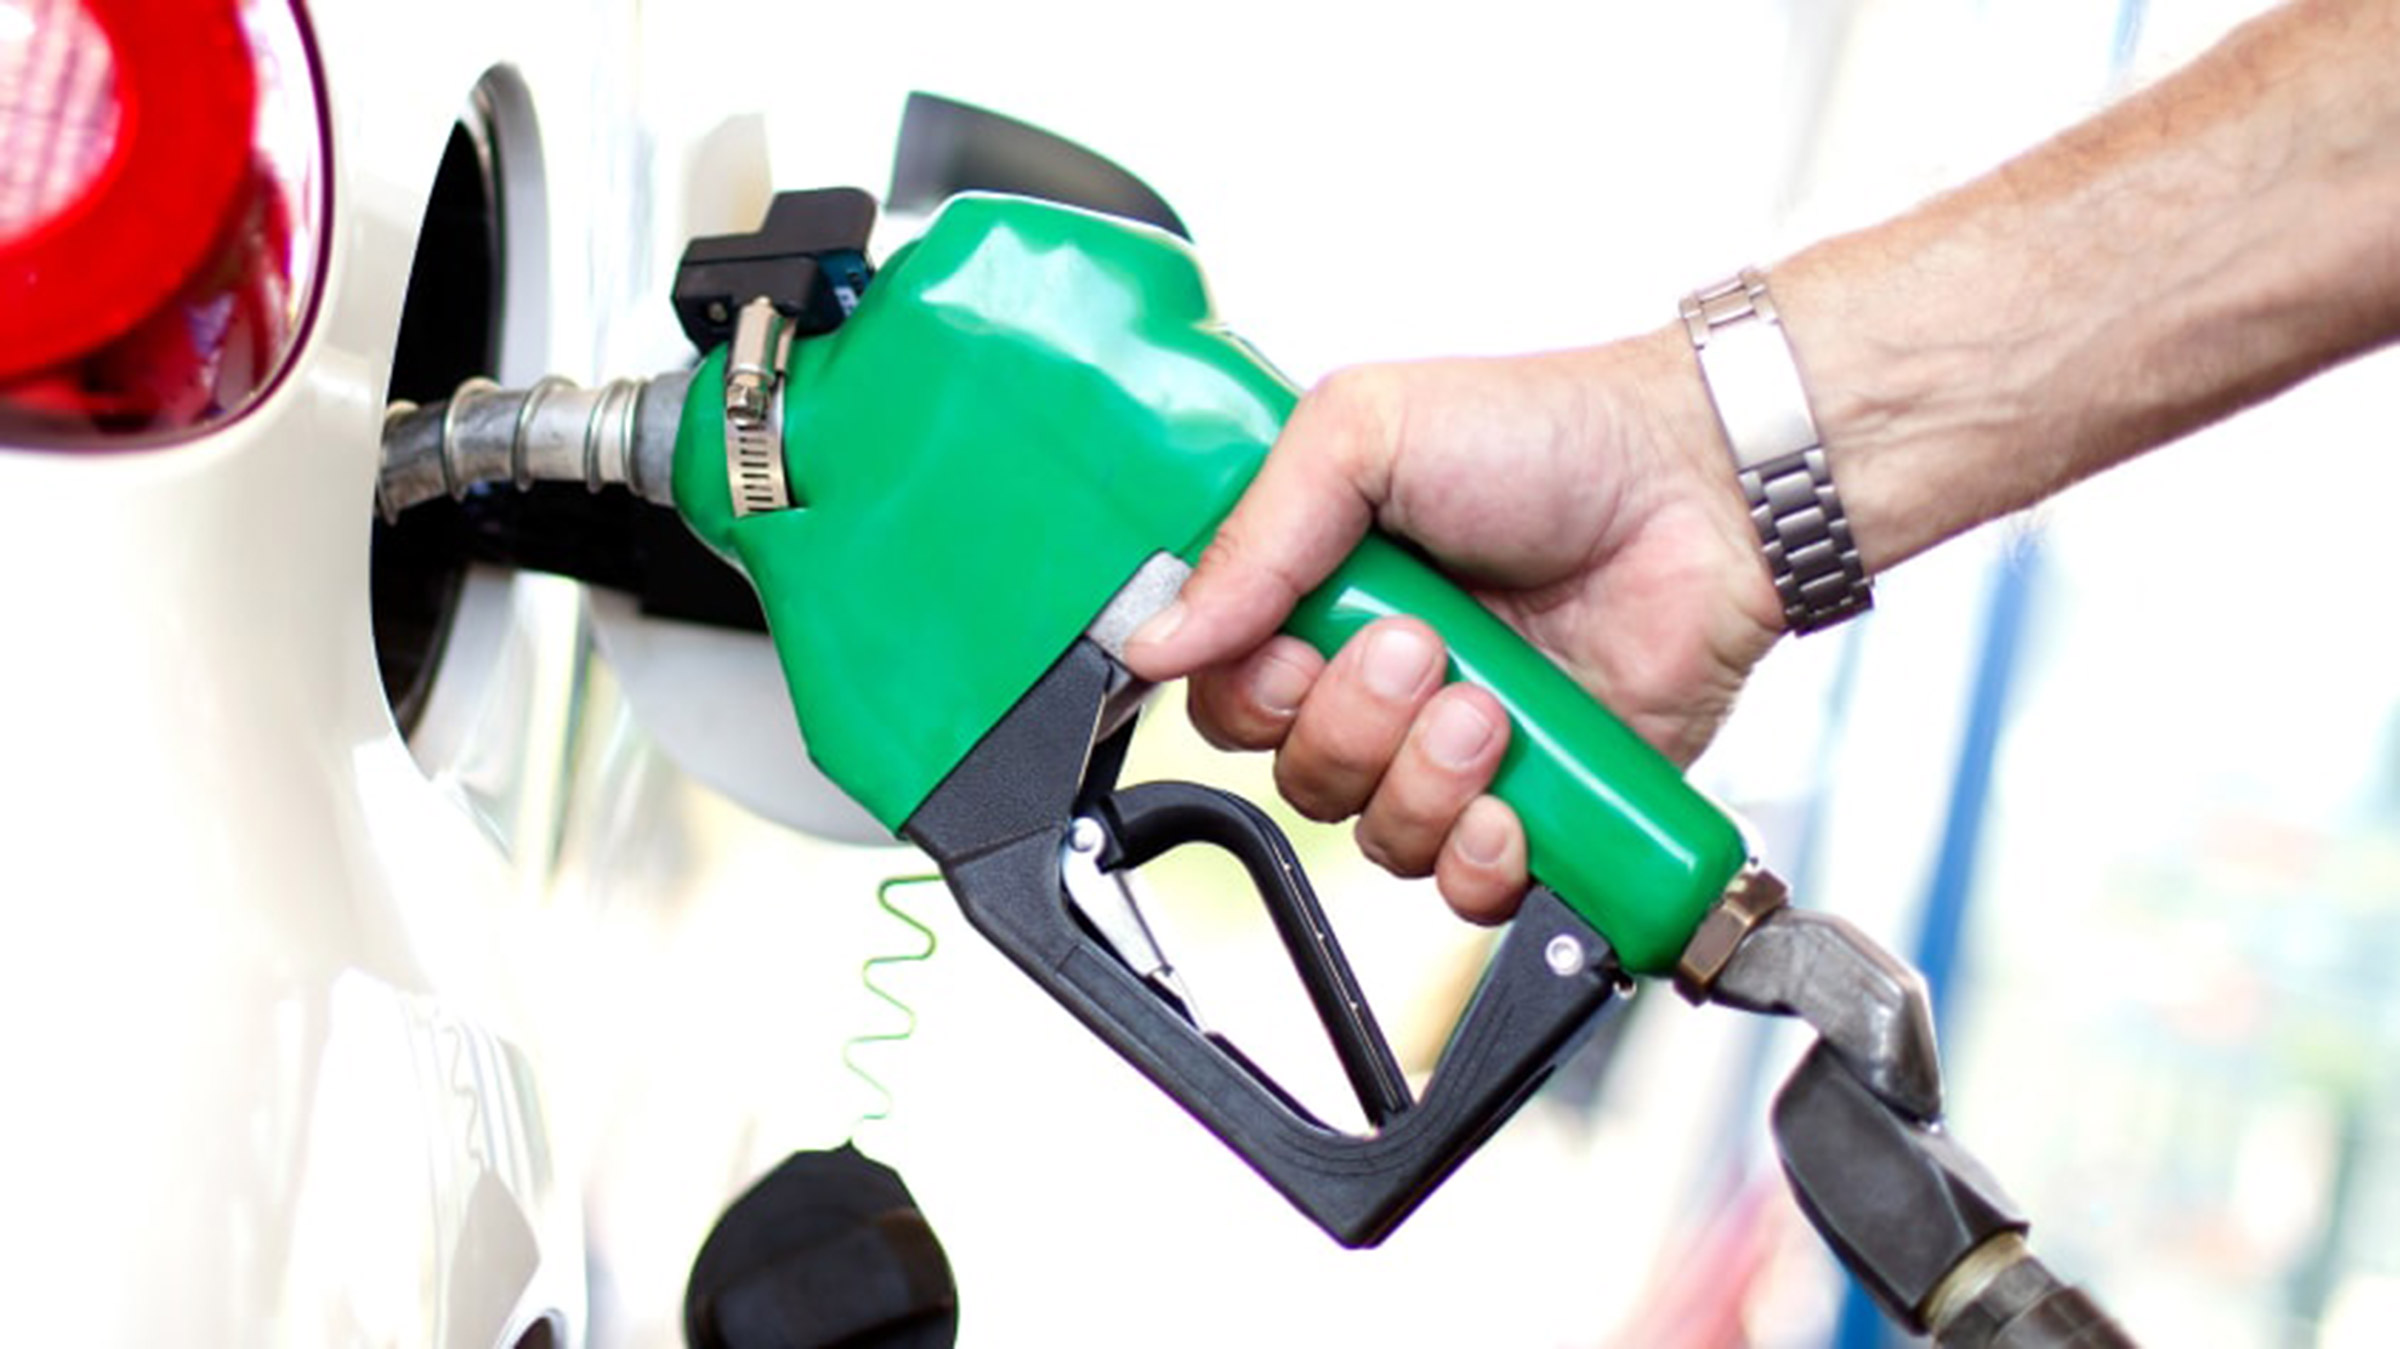 Fuel stations risk closure as petrol sales fall 75%